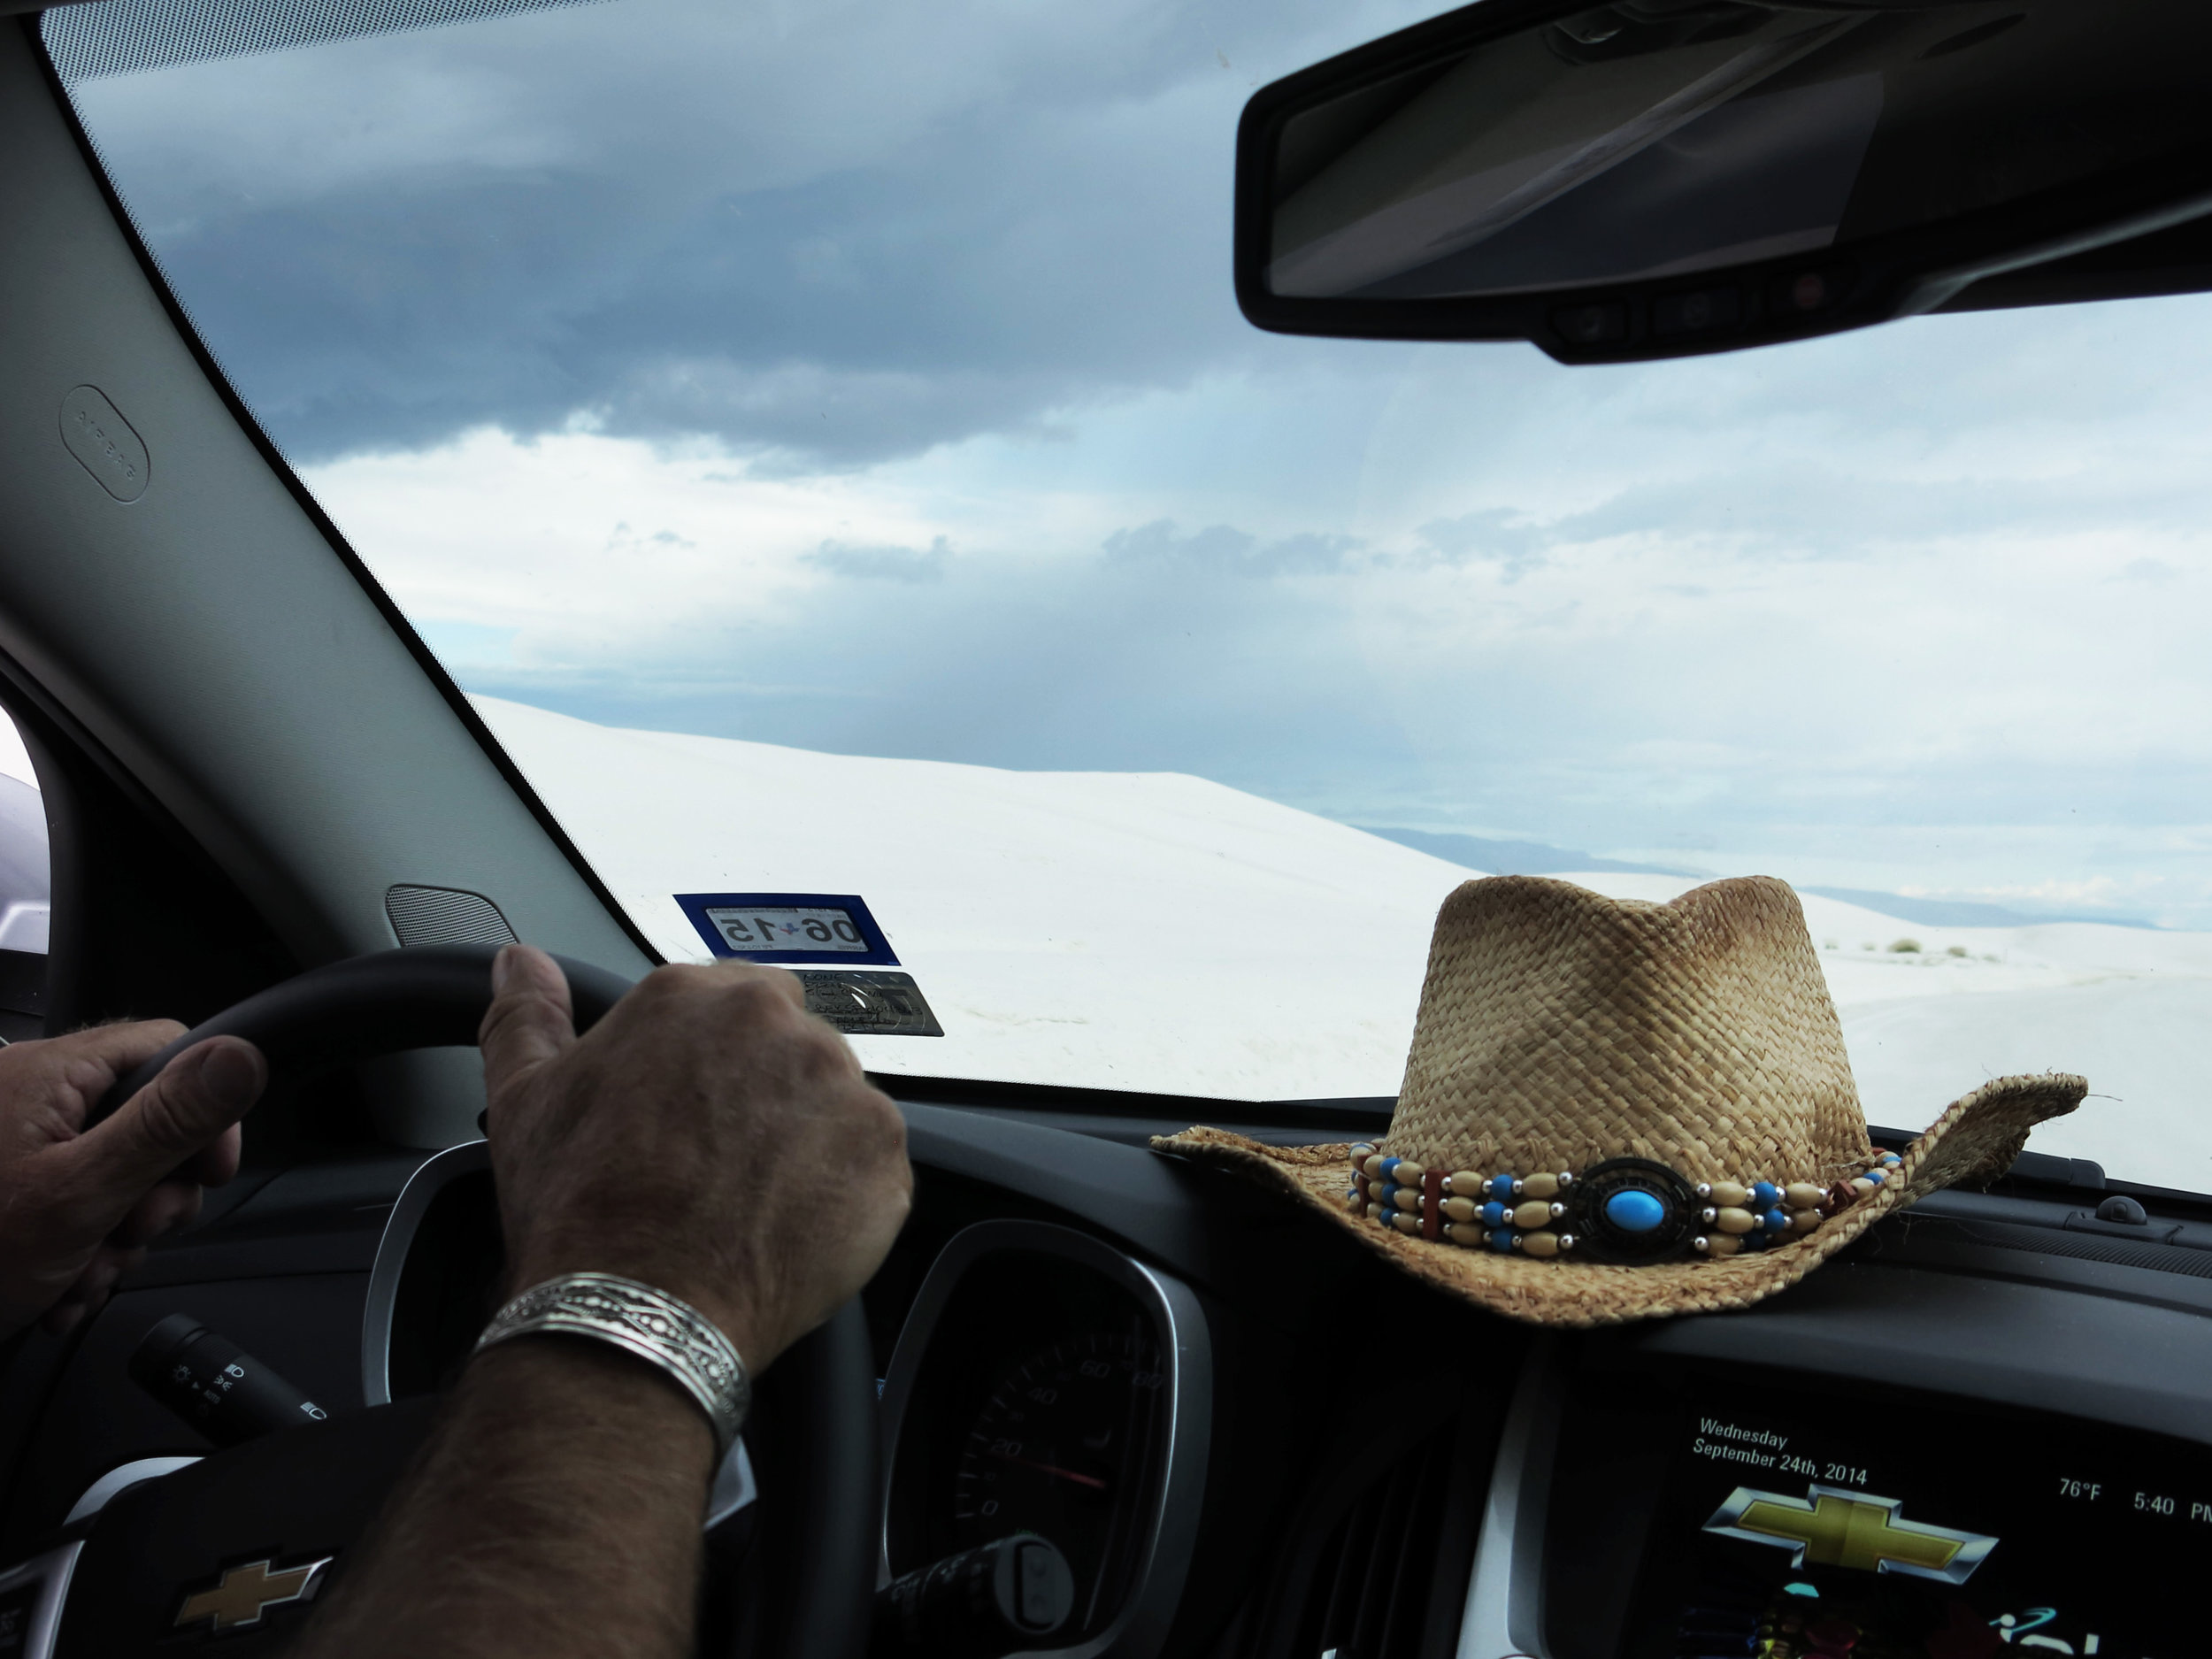 DRIVING THROUGH MY OWN DREAMS!! WHITE SANDS NAT. MONUMENT [NM] 24 SEPT 2014